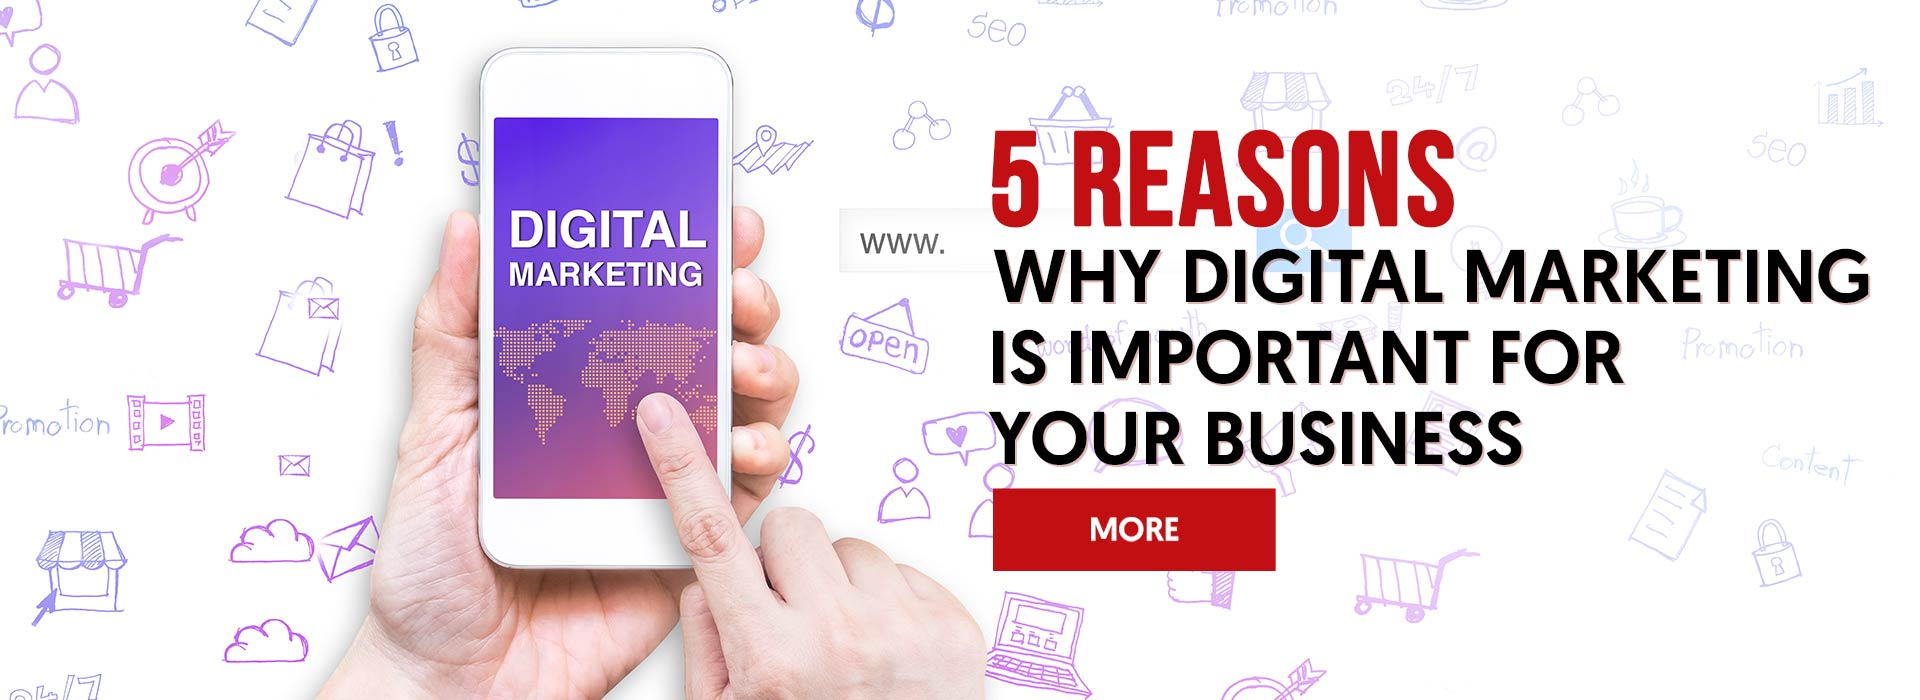 5 Reasons Why Digital Marketing